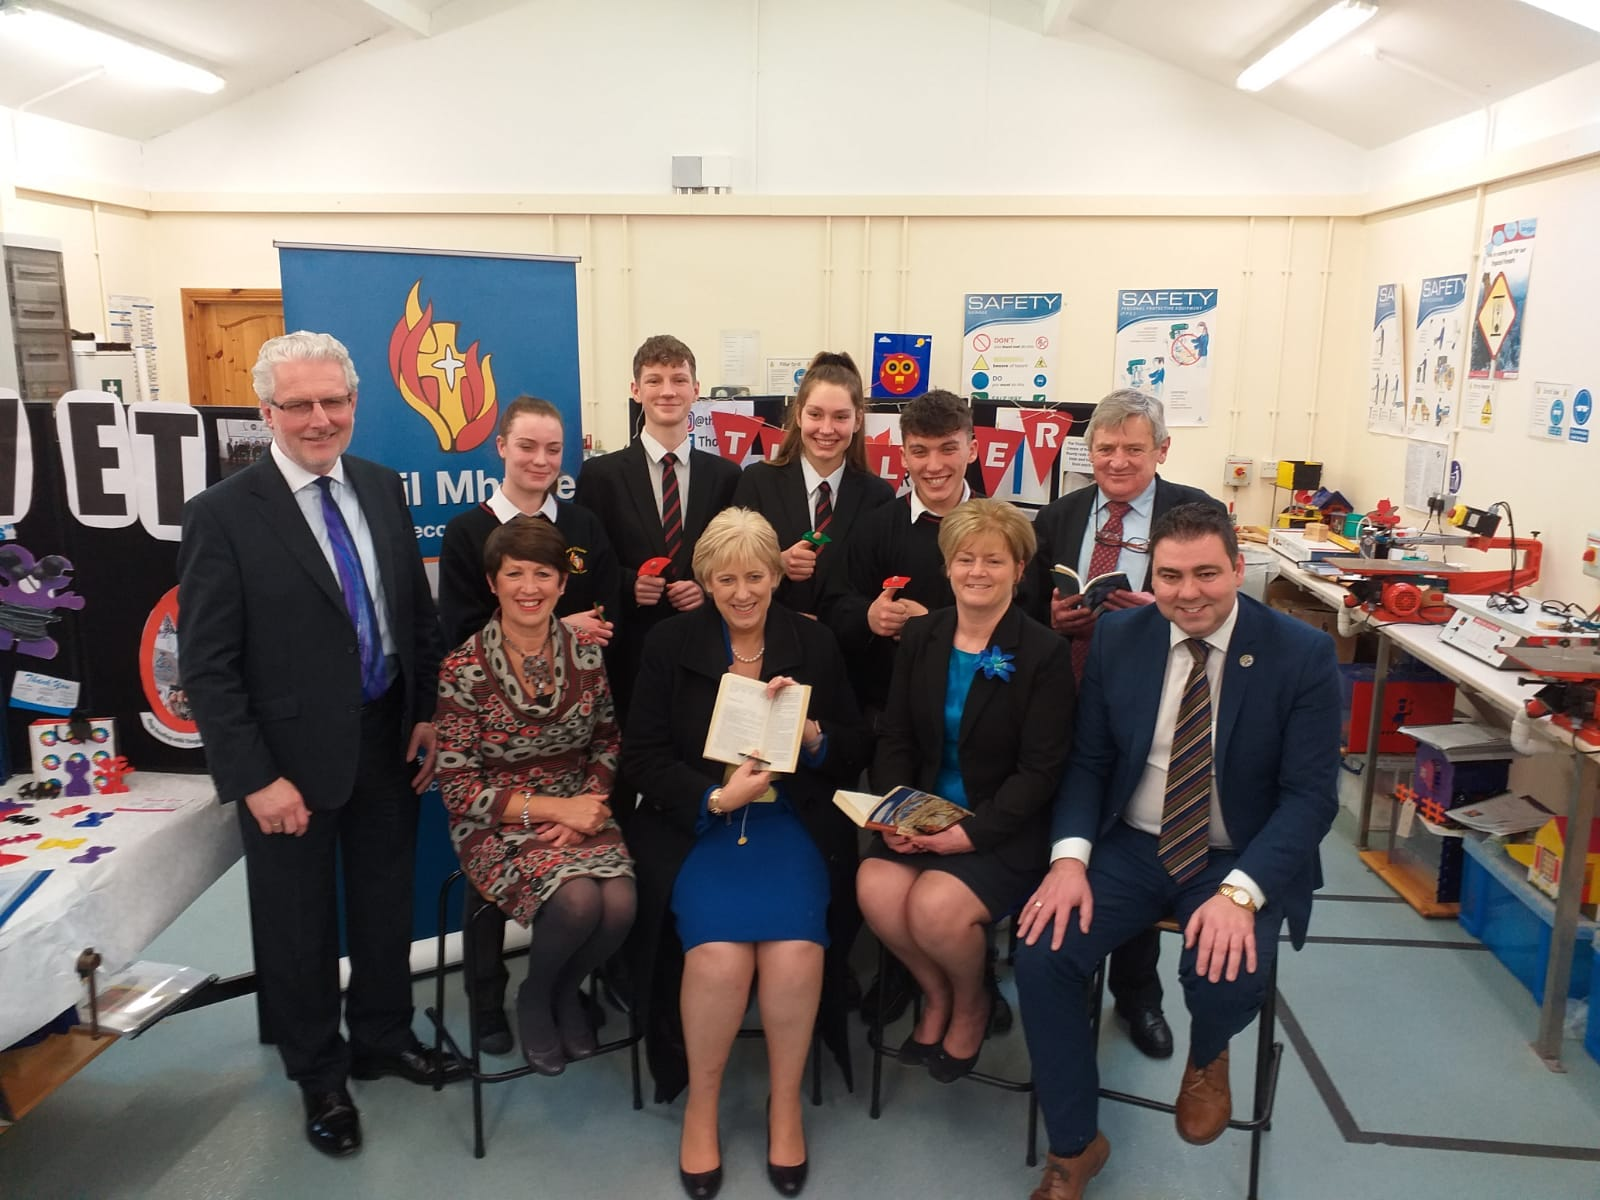 O'Shea and Minister Humphreys visit Scoil Mhuire for Enterprise Lesson